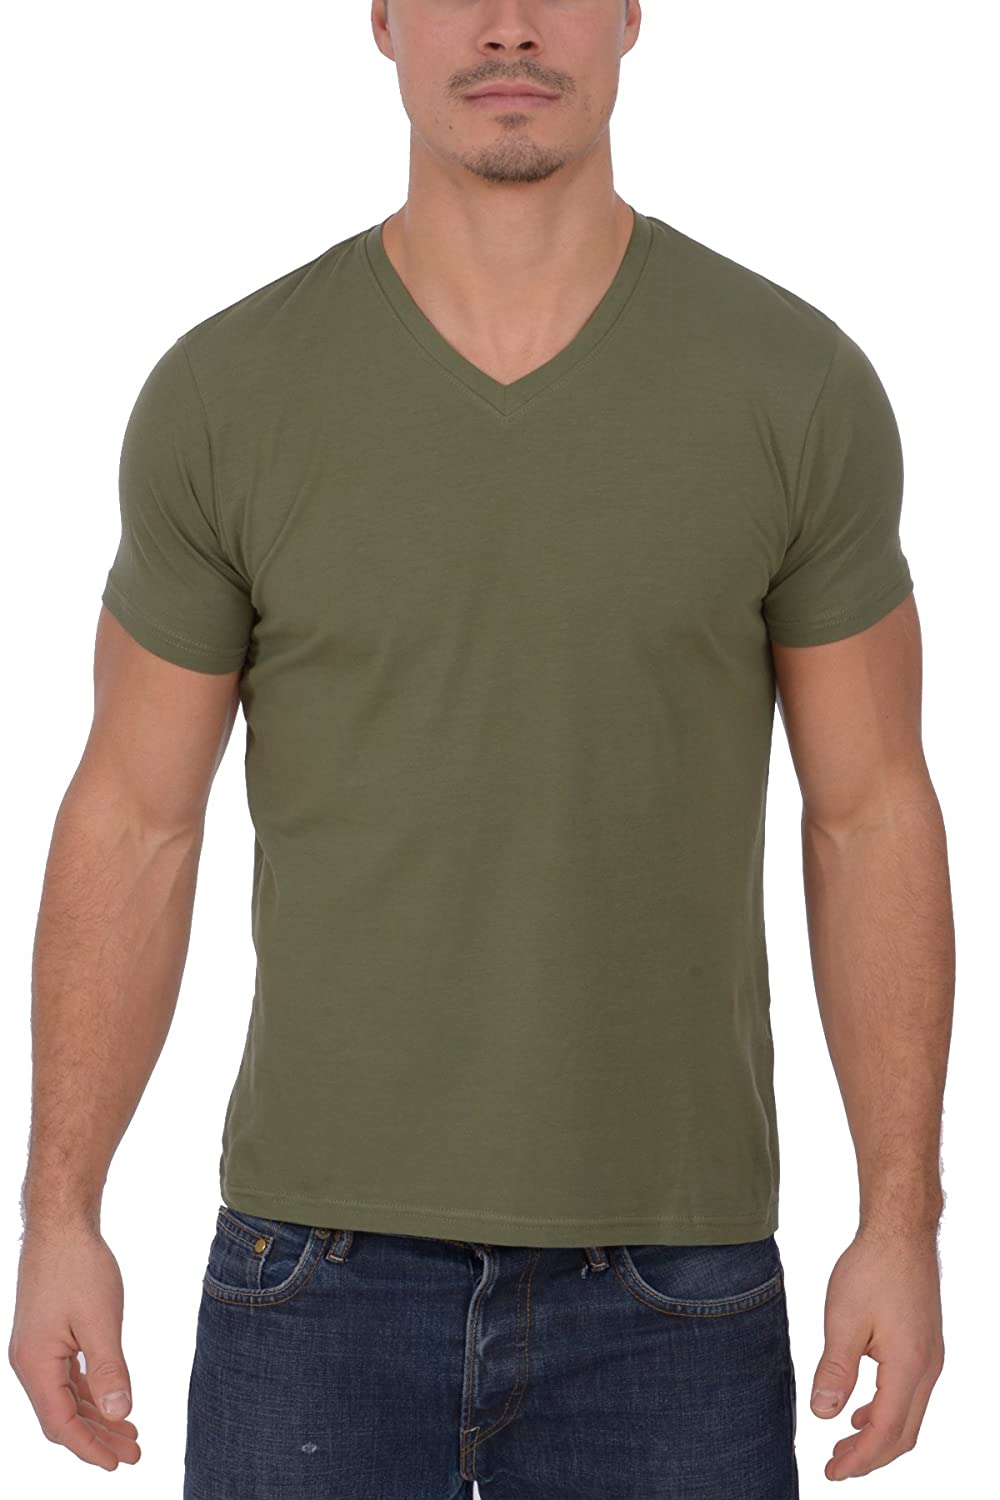 British Invasion Men's Solid V Neck T- Shirt BIAC